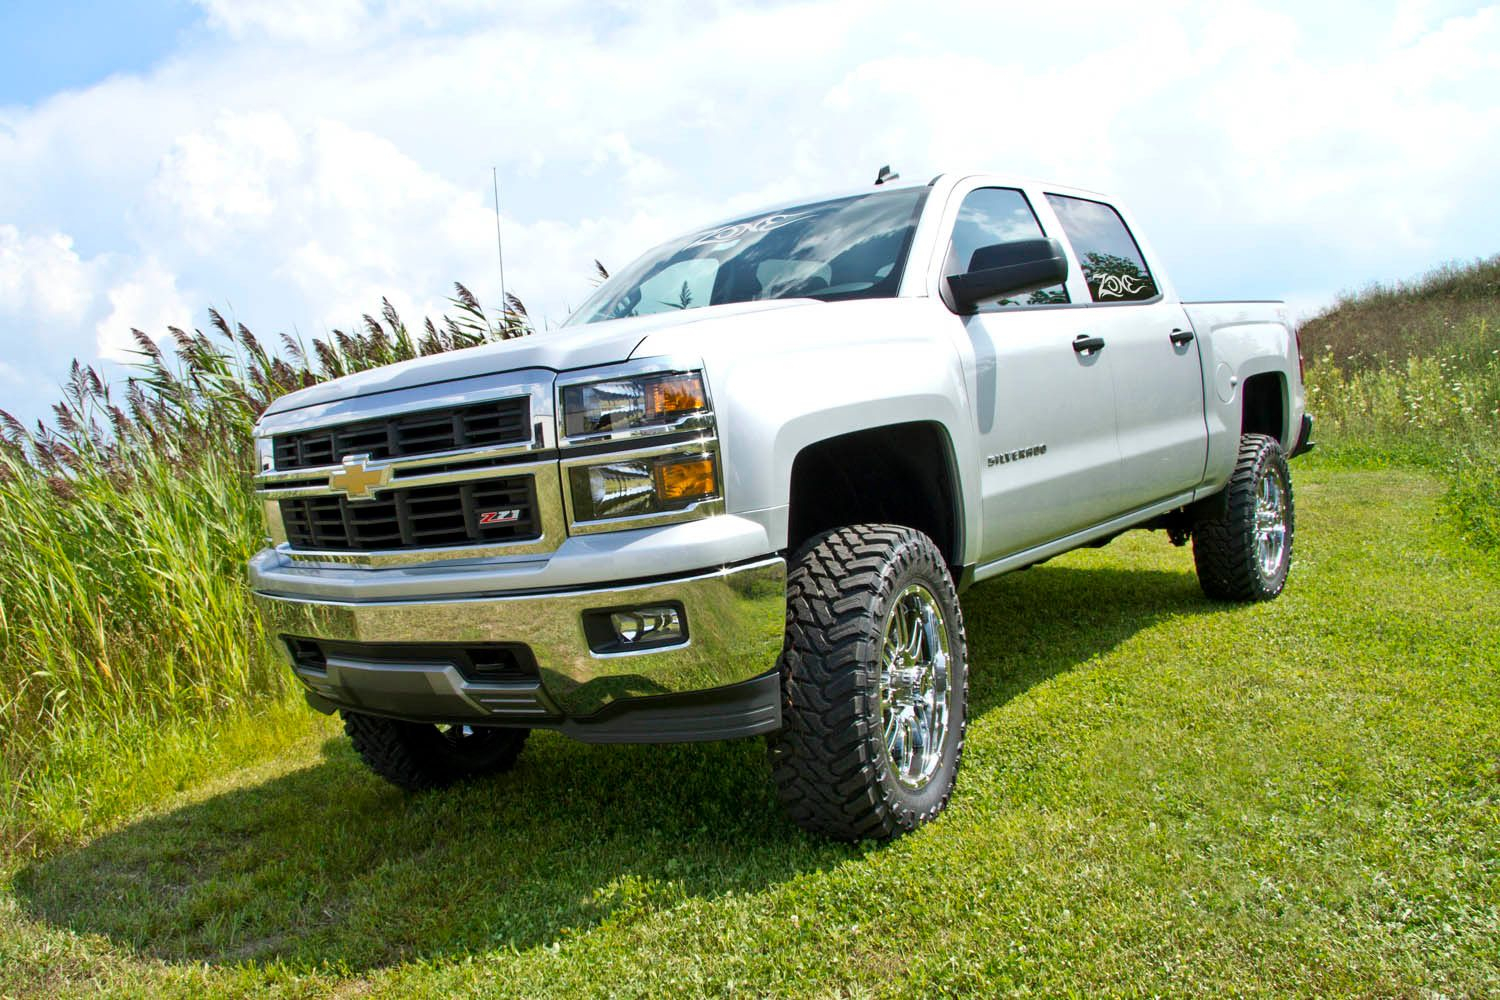 Chevrolet silverado 1500 review research new used chevrolet 2014 silverado inch lift needs running boards publicscrutiny Images